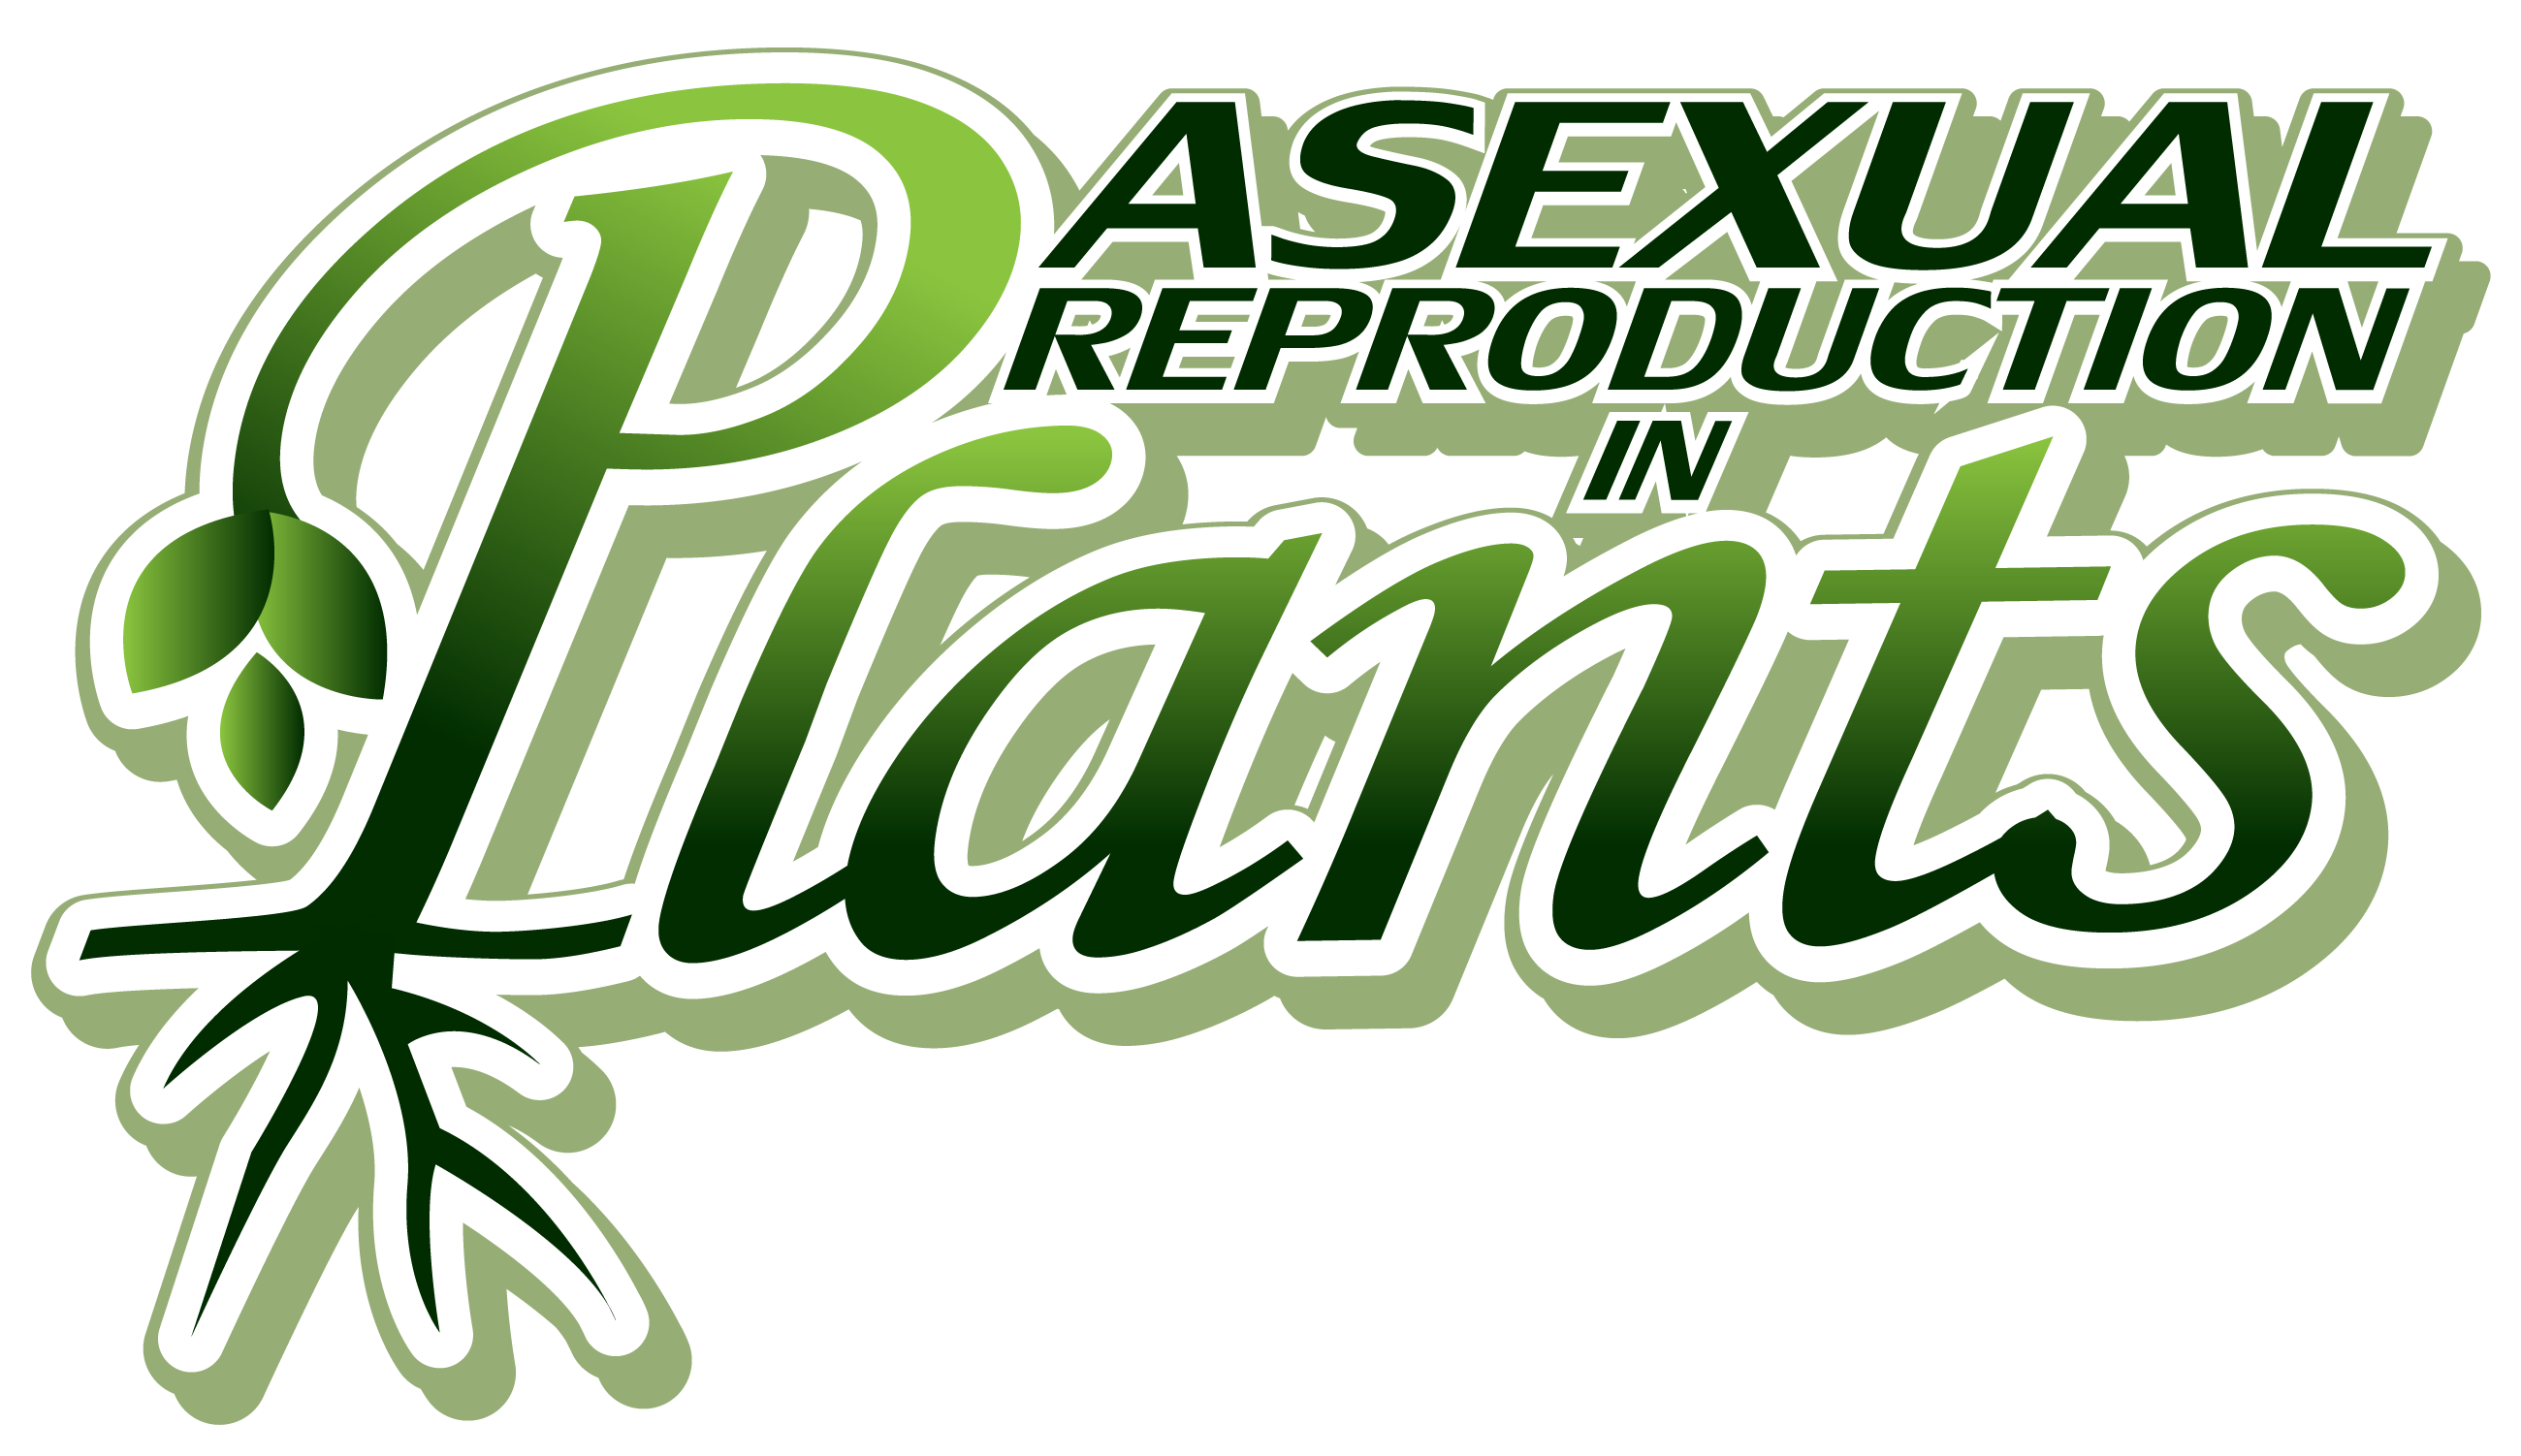 A sexual reproduction in plants